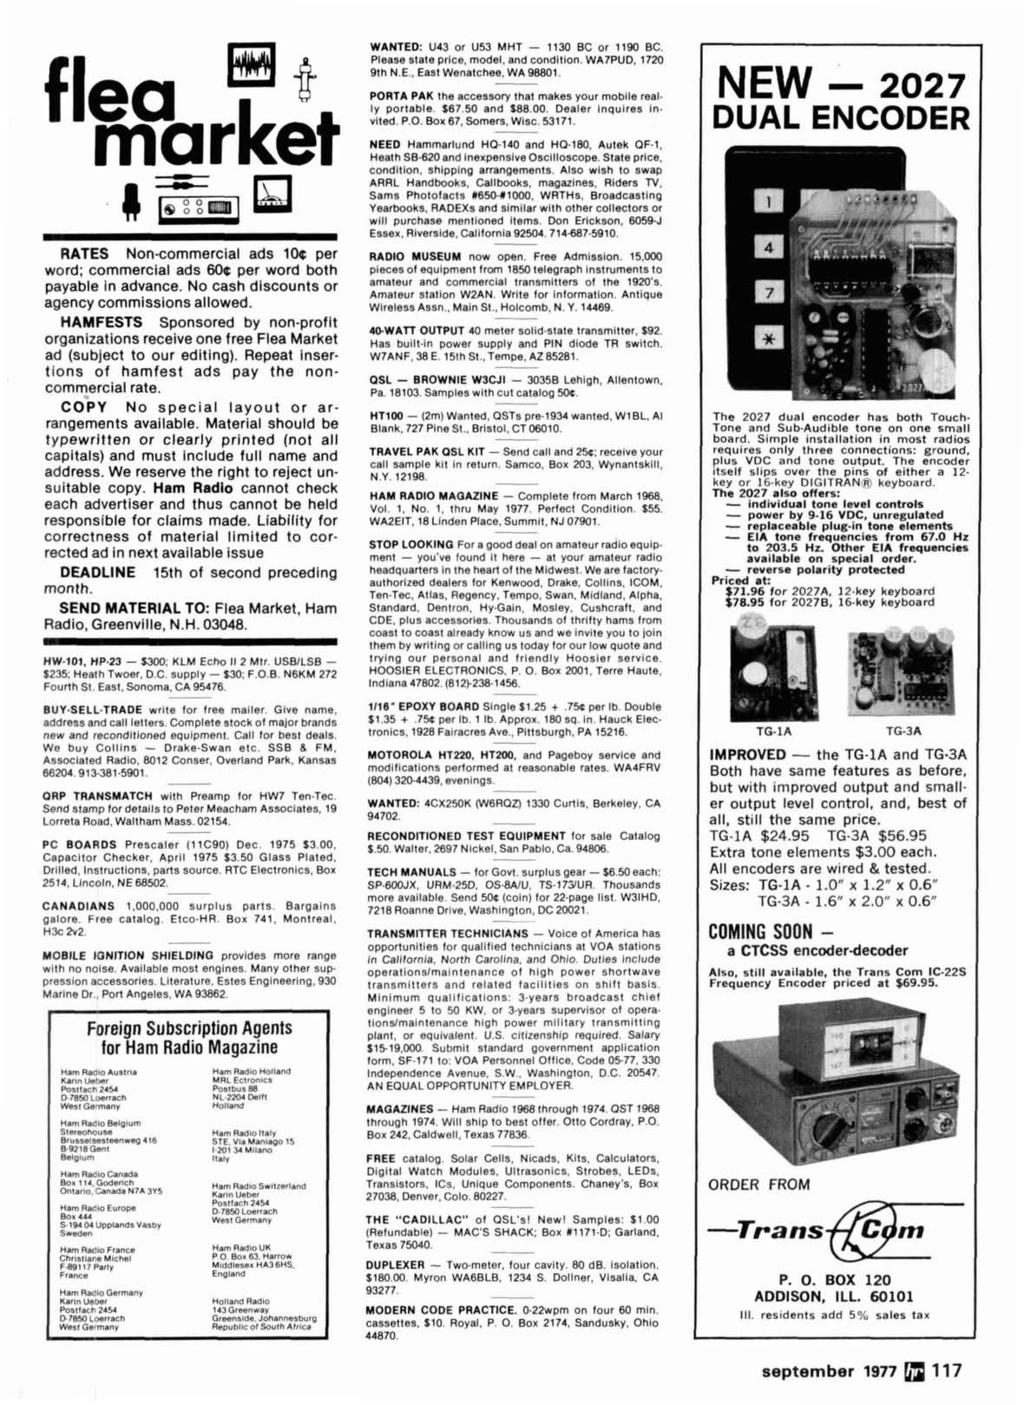 Radio September 1977 Frequency Synthesizer 44 Pi Network Design Pin Diagram Of Ic 741 Polytechnic Hub Flea Market Rates Non Commercial Ads 10c Per Word 60c